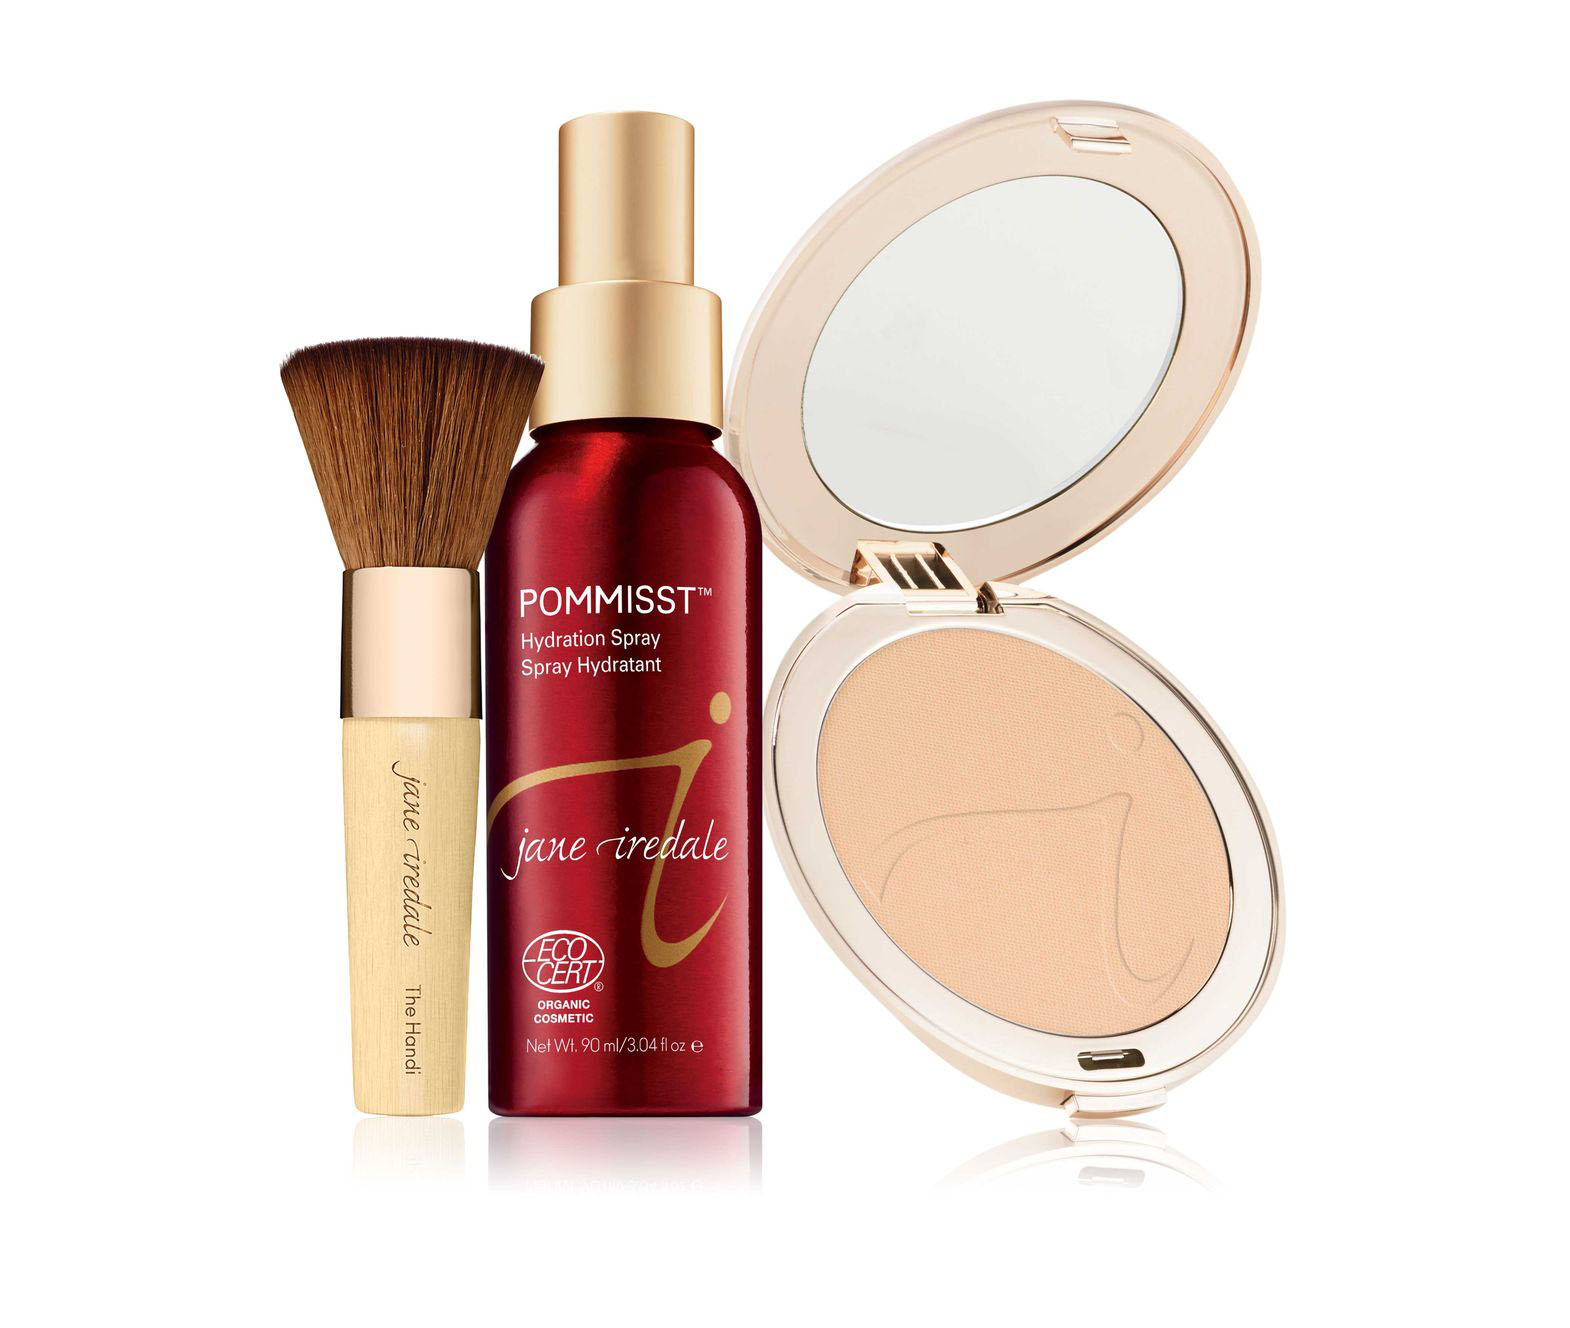 Jane Iredale premium make up